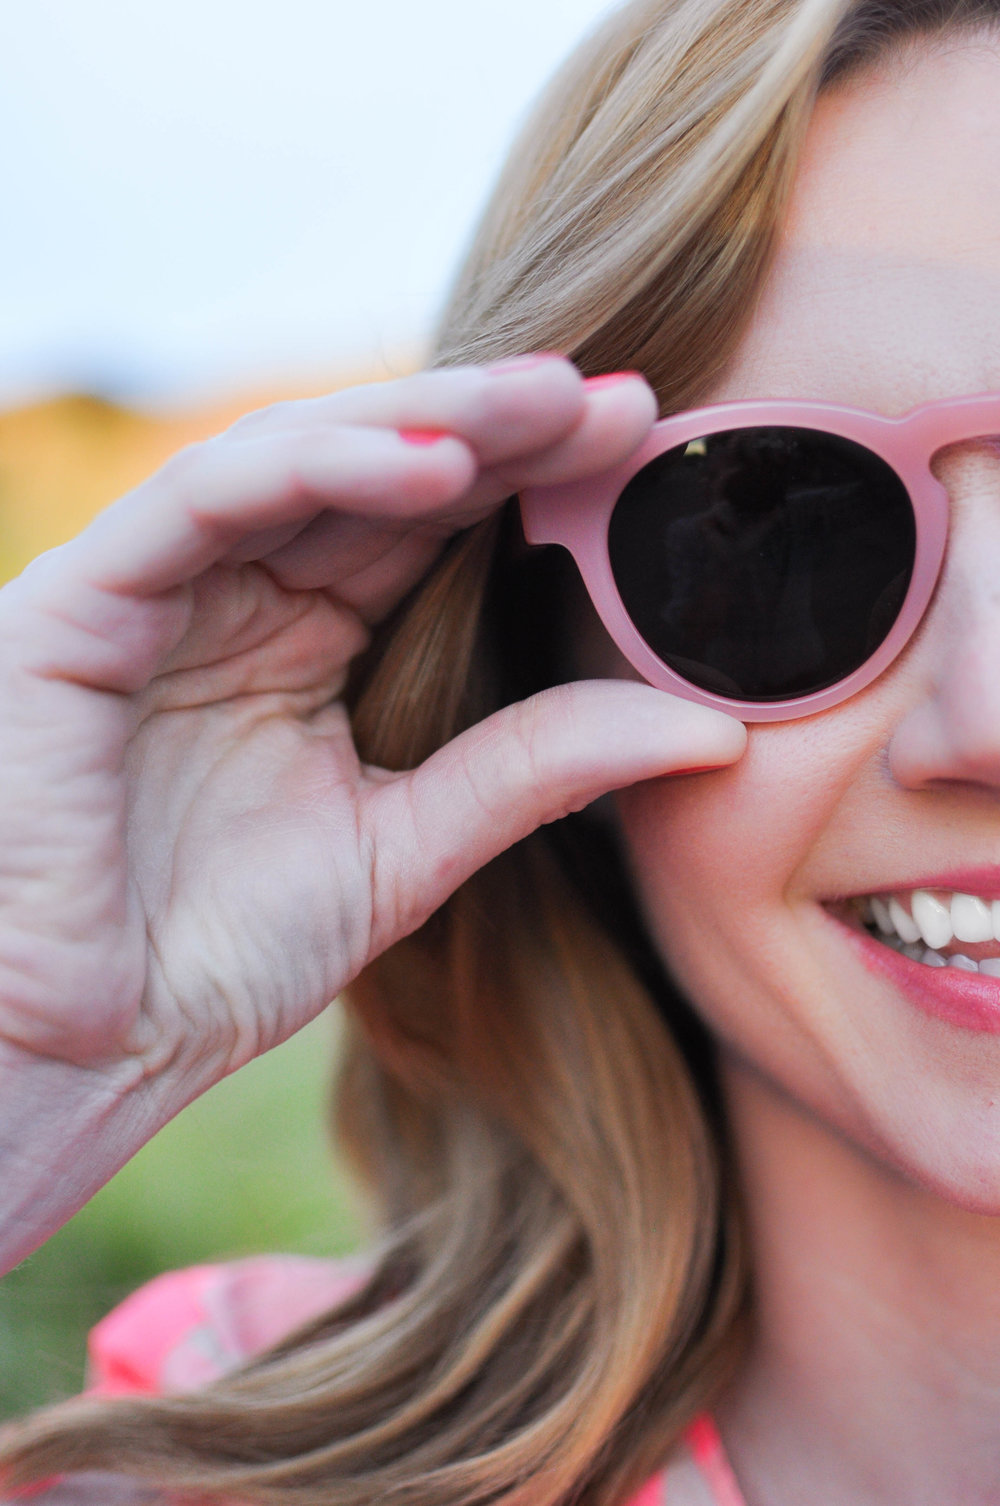 closeup of woman's smiling face in pink-rimmed sunglasses